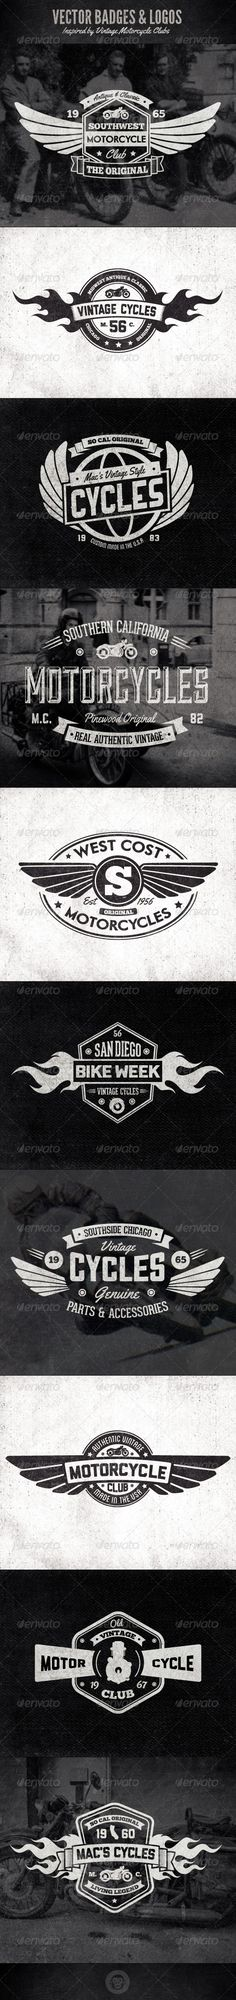 Vintage Badges and Logos - Motorcyle Inspired | Buy and Download: http://graphicriver.net/item/vintage-badges-and-logos-motorcyle-inspired/6331997?WT.ac=category_thumb&WT.z_author=GraphicMonkee&ref=ksioks